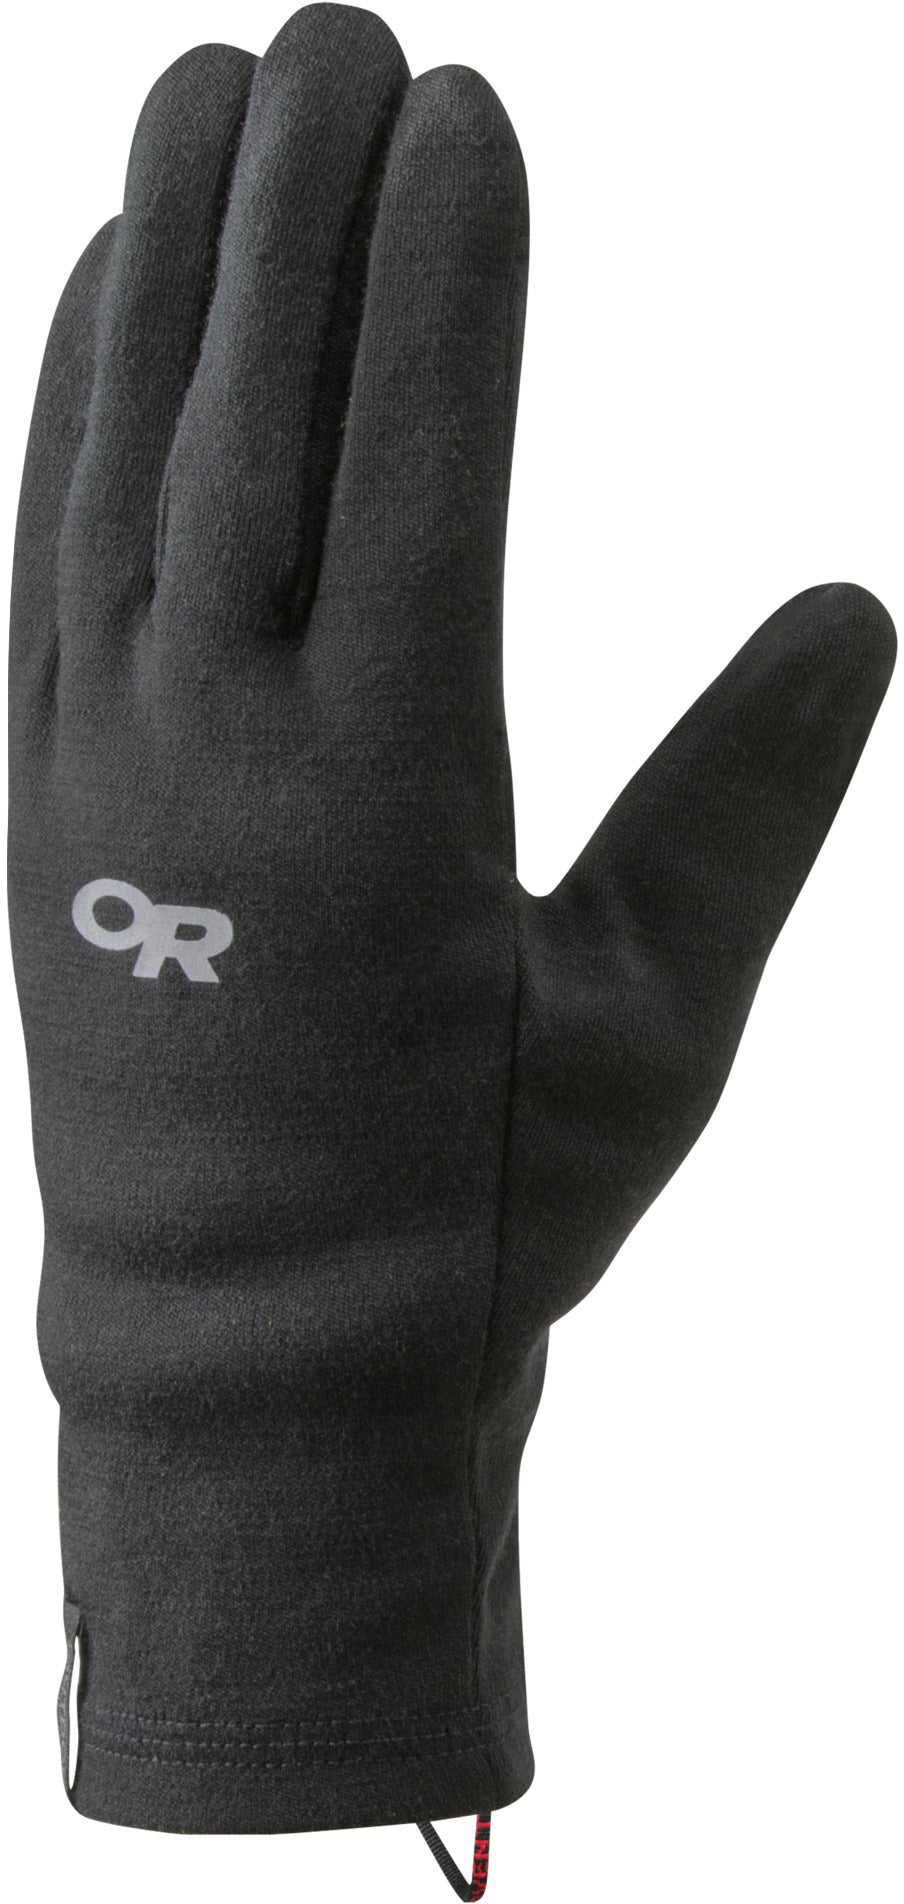 Outdoor Research - Woolly Sensor - Black